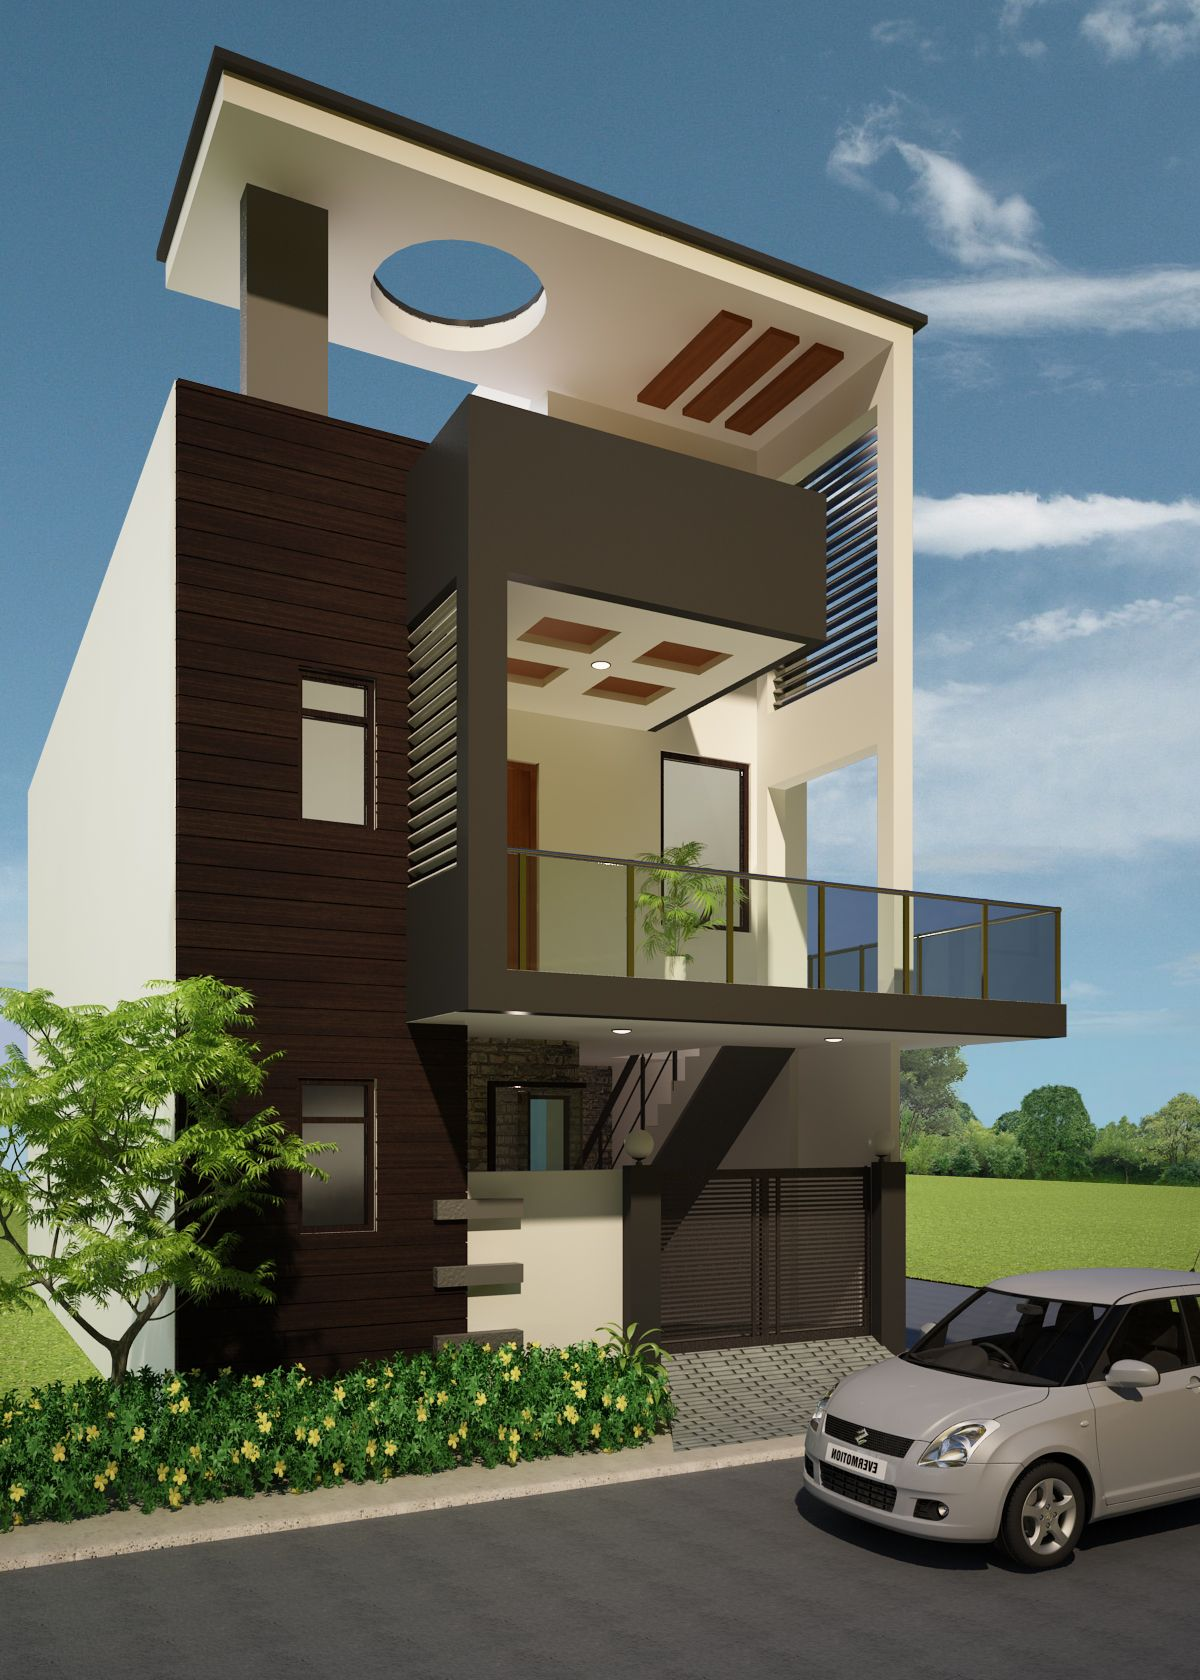 Exterior By Sagar Morkhade Vdraw Architecture: This Is A 3D Render Of An Exterior